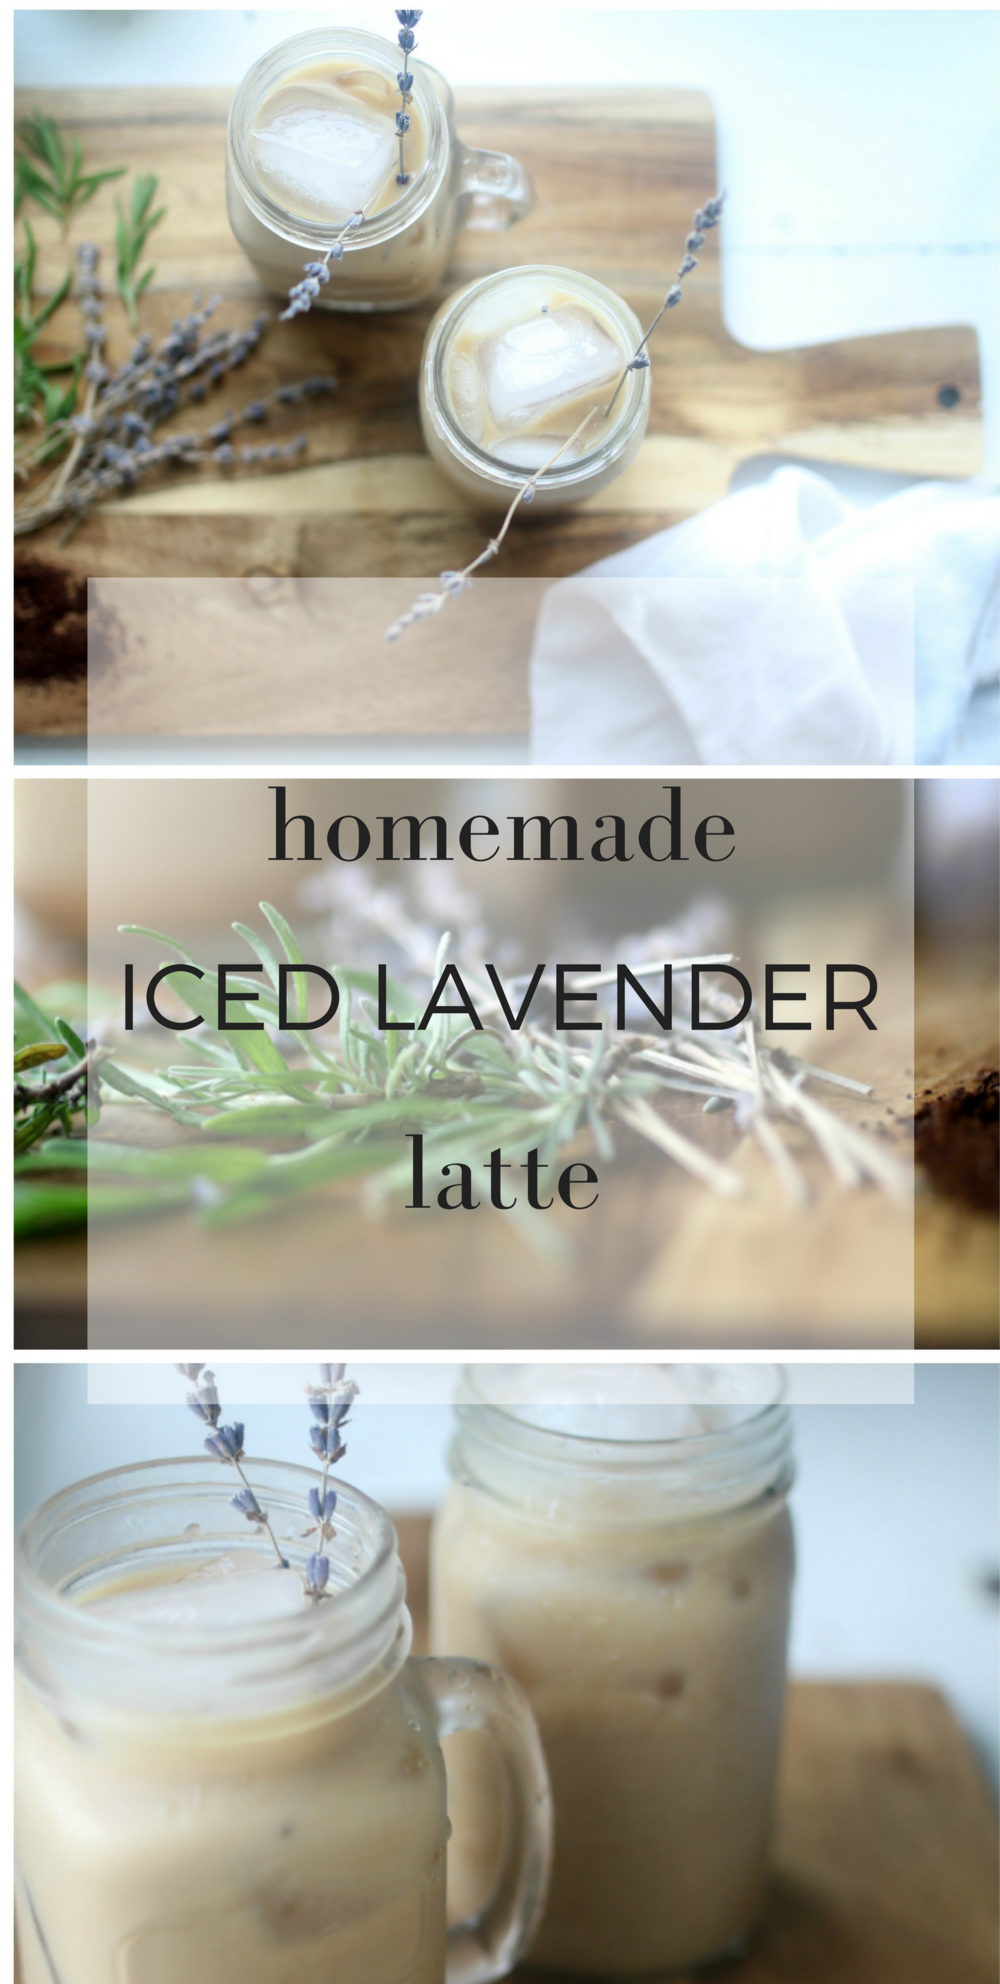 How to Make a Homemade Iced Lavender Latte with Essential Oils